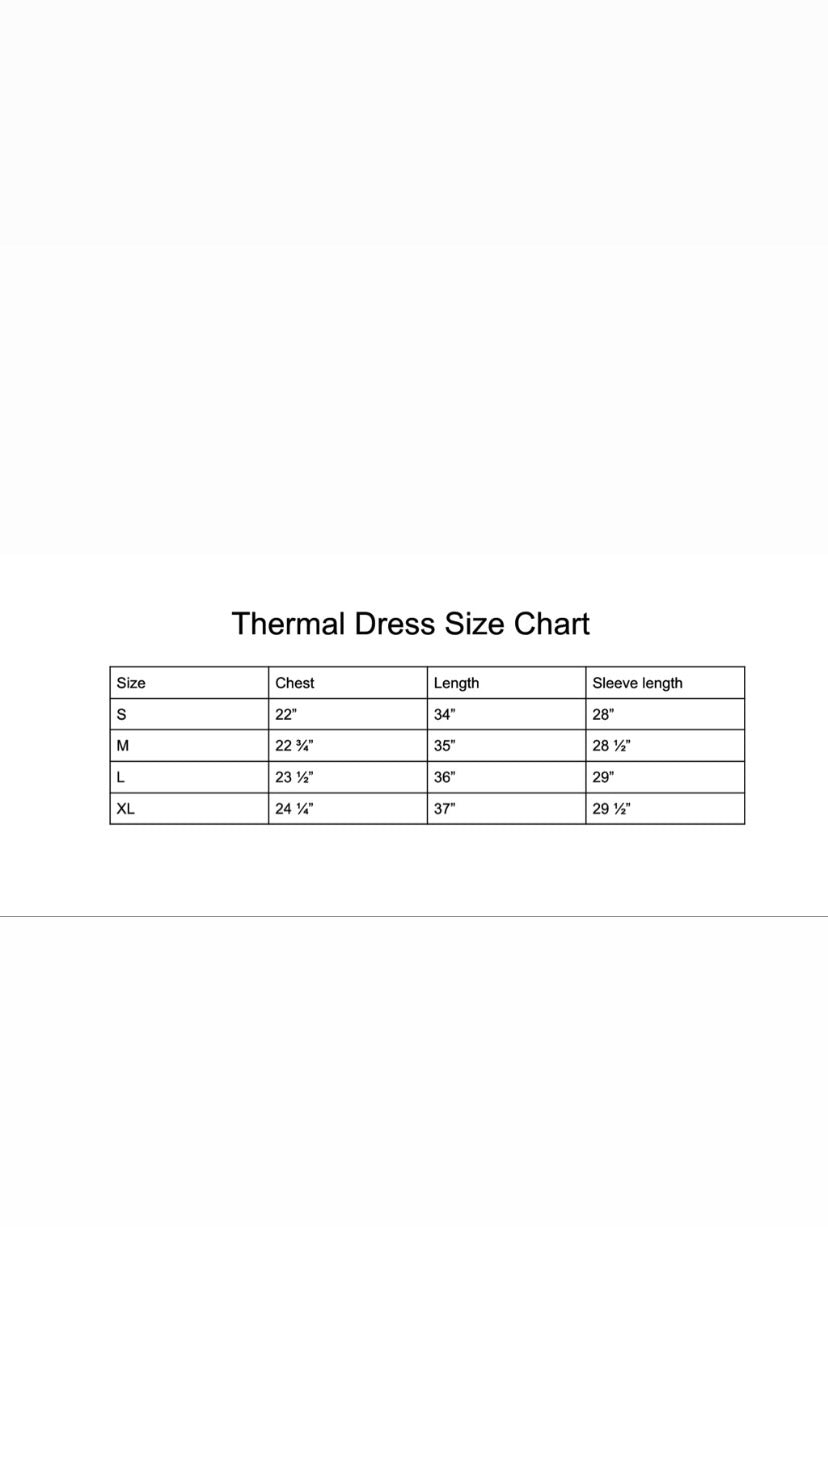 Thermal Dress